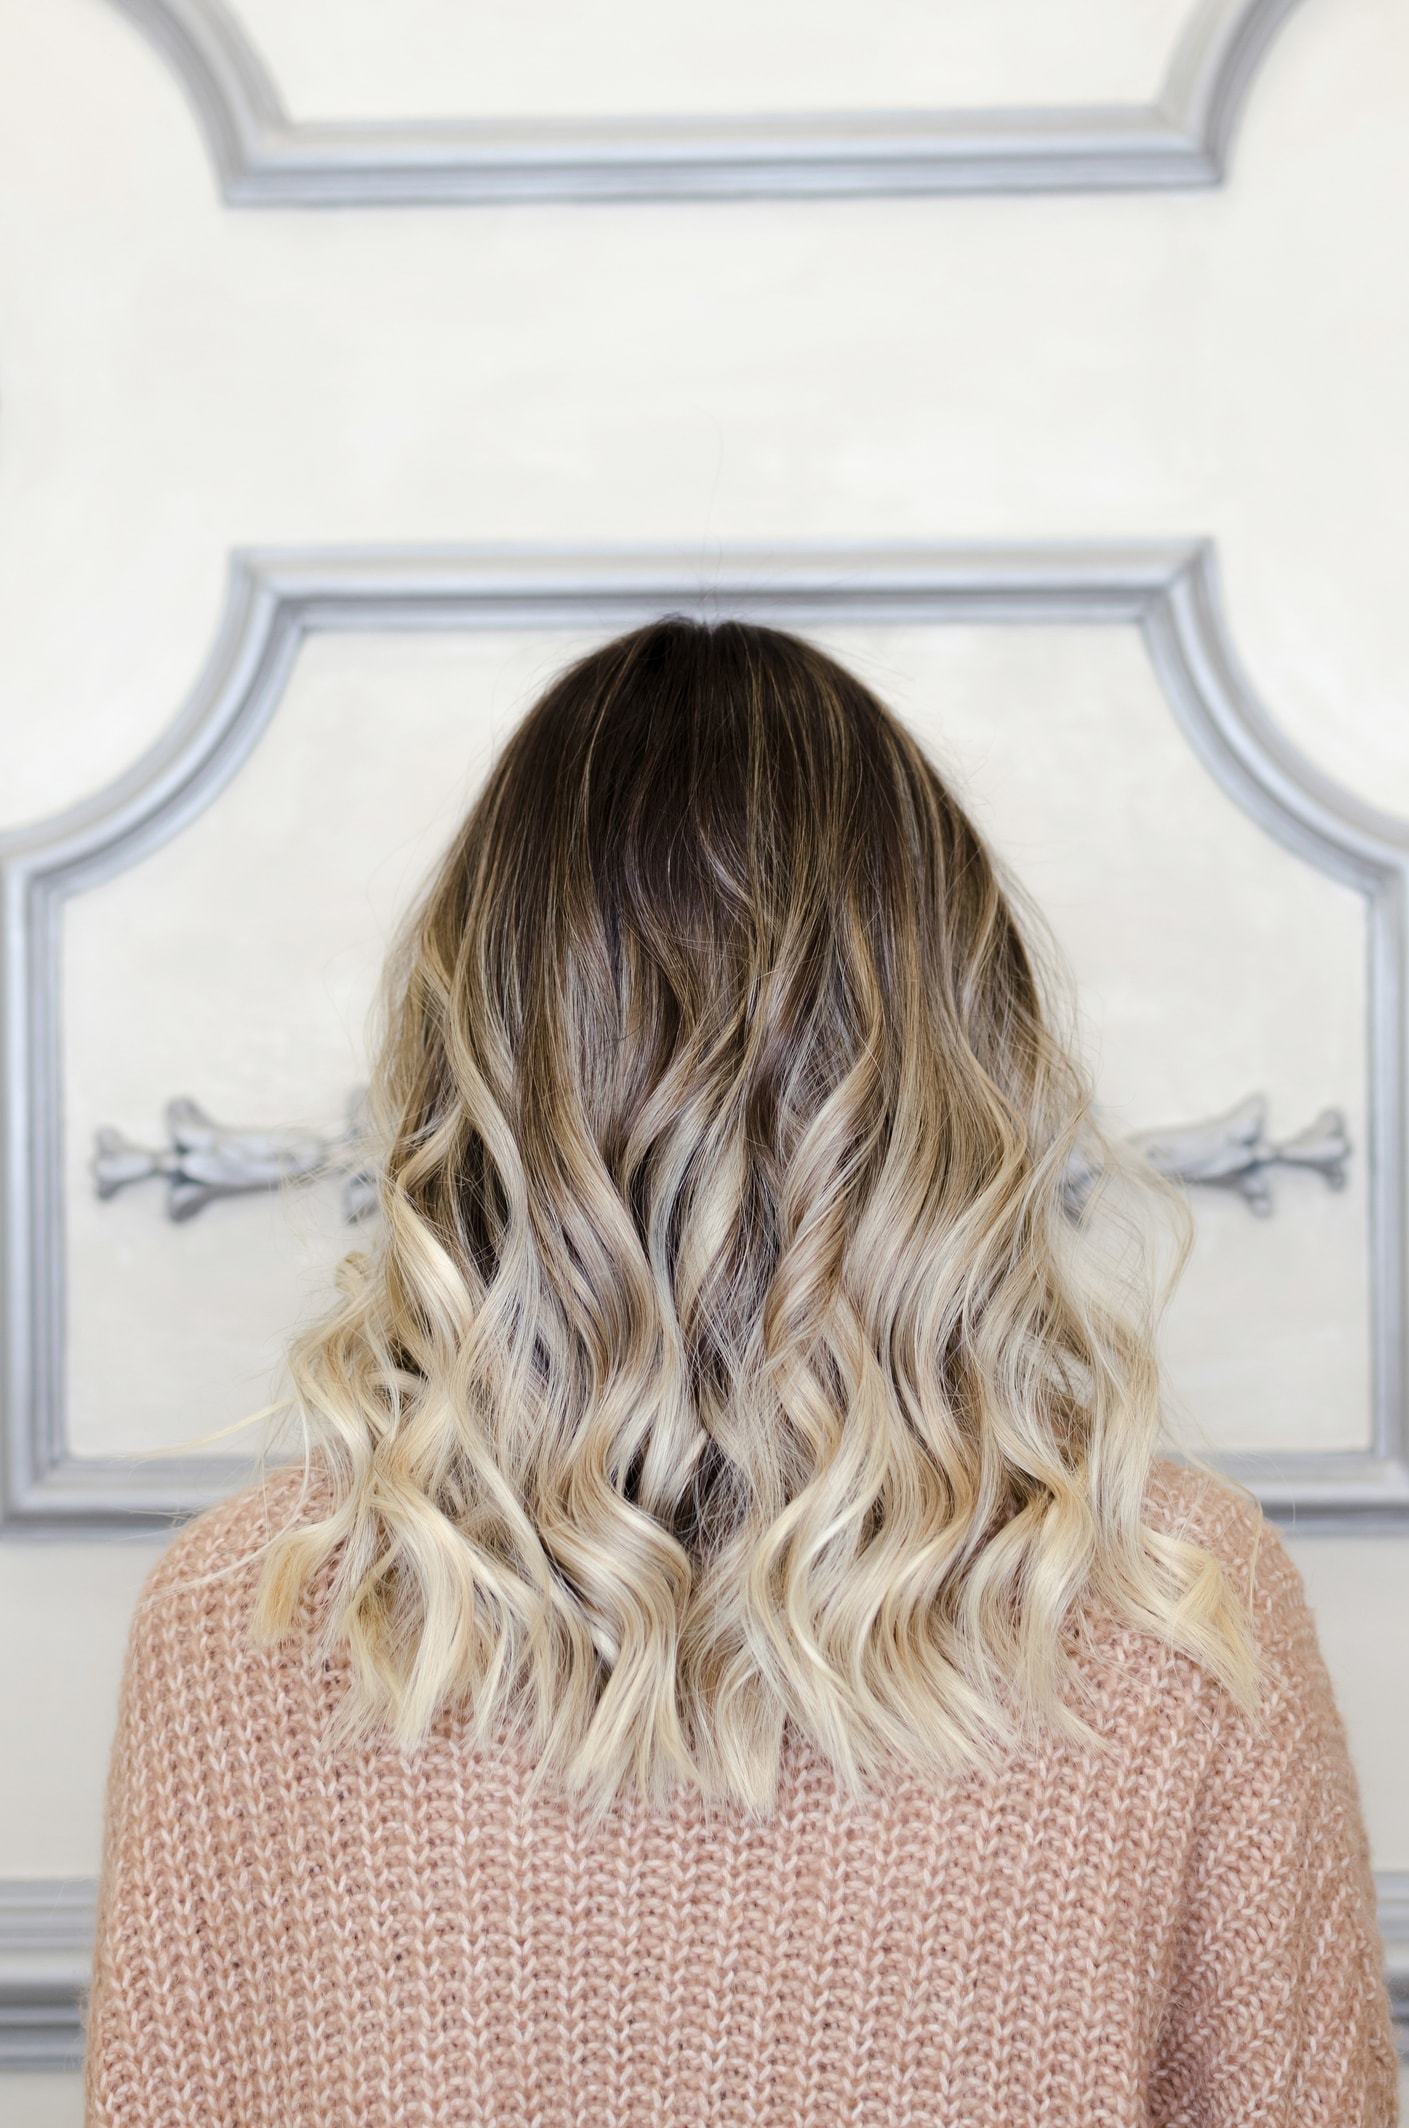 black ombre hair icy blonde curls